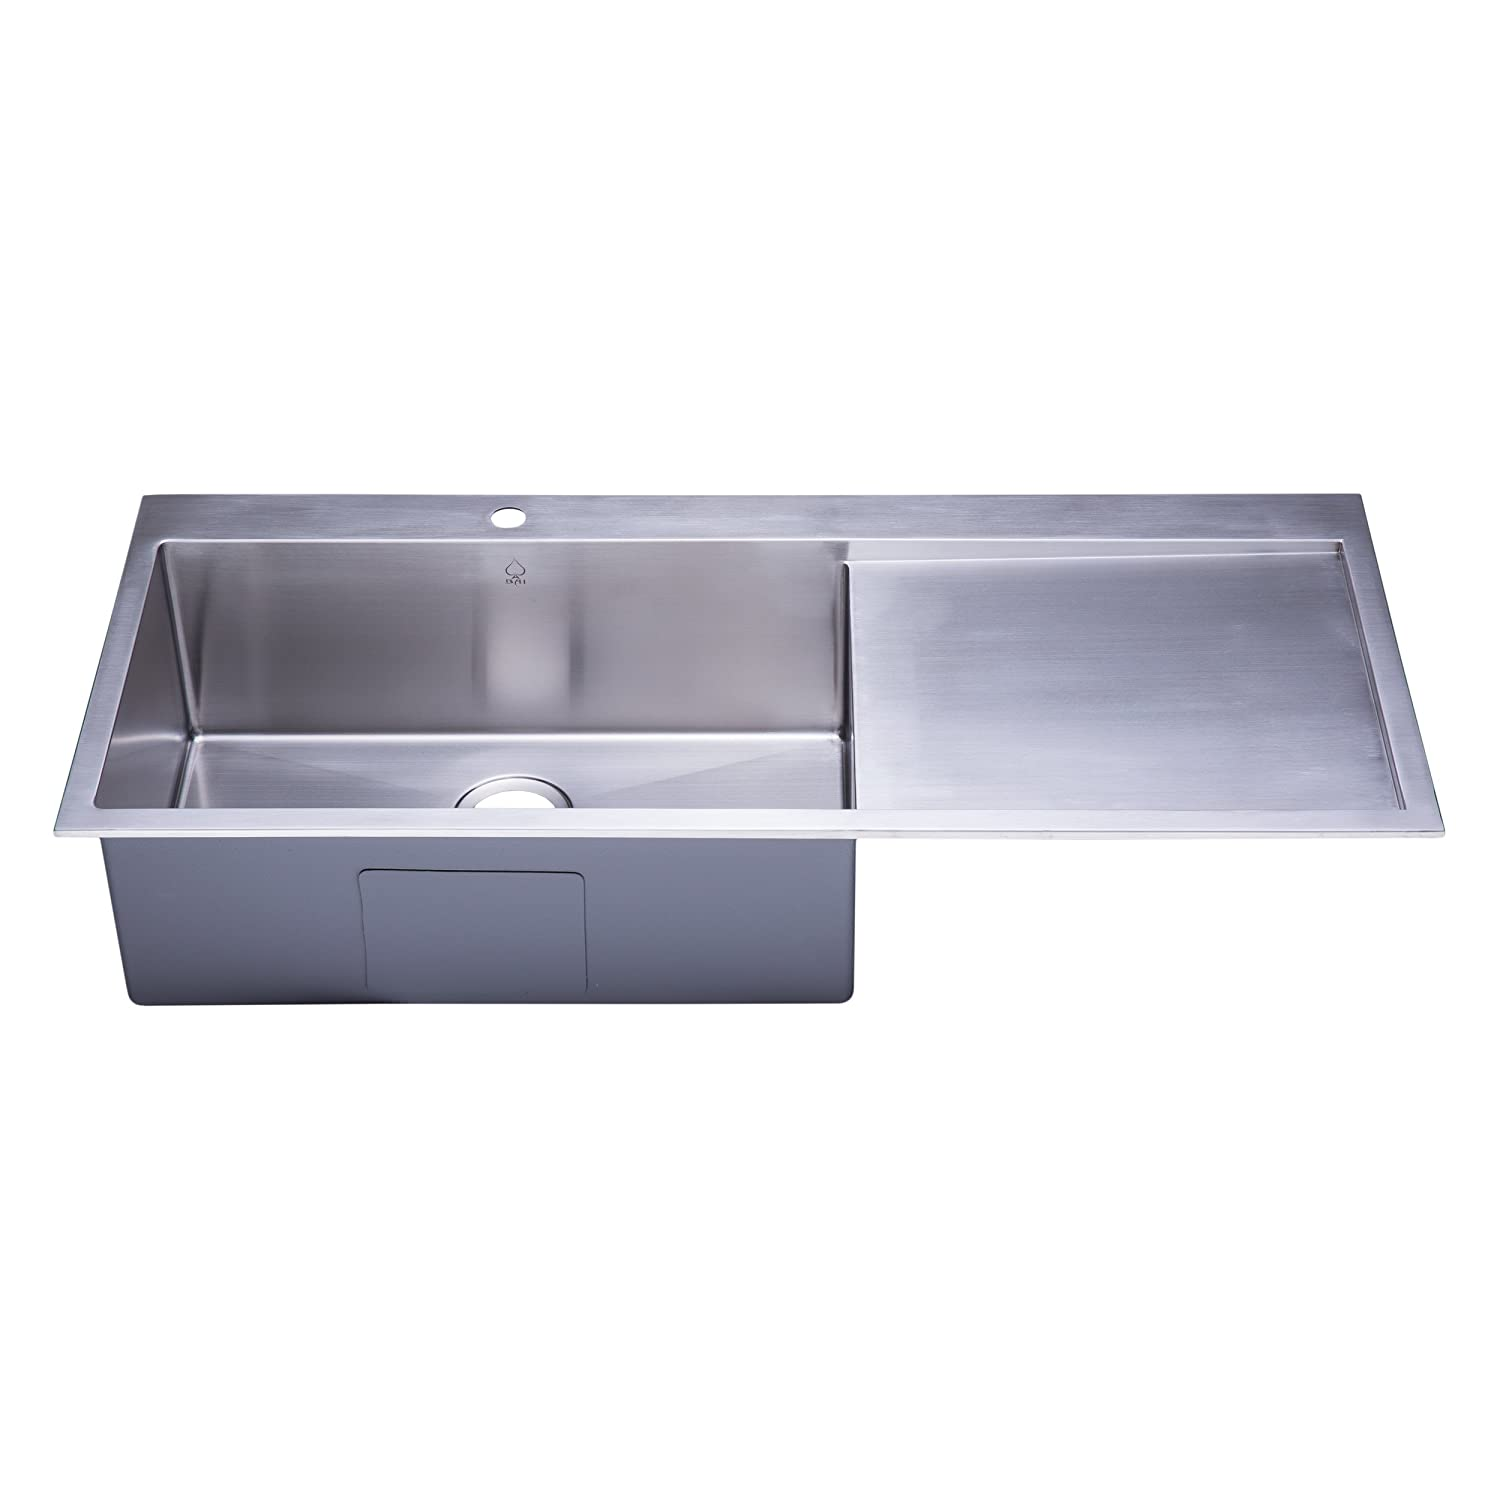 bai 1233 48 handmade stainless steel kitchen sink single bowl